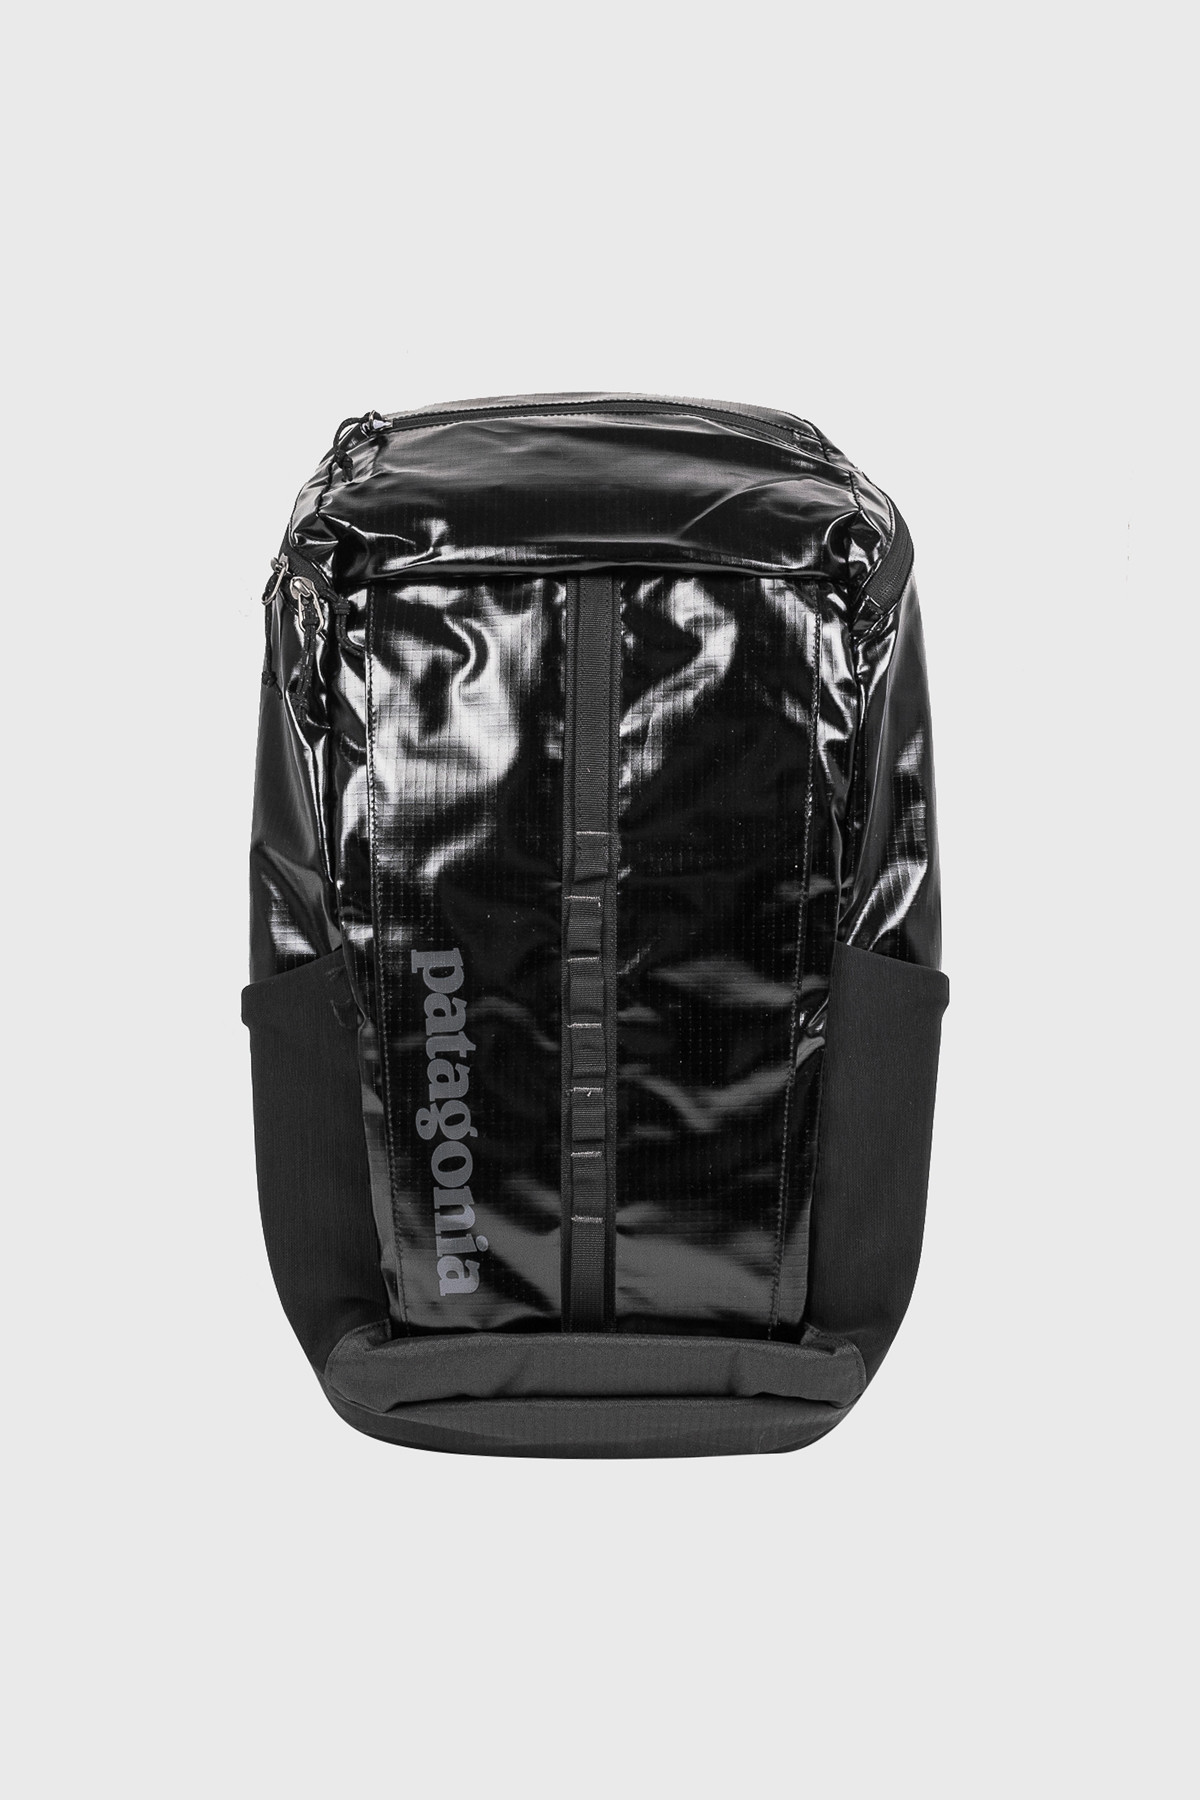 Patagonia - Black Hole® Pack 25L - Black